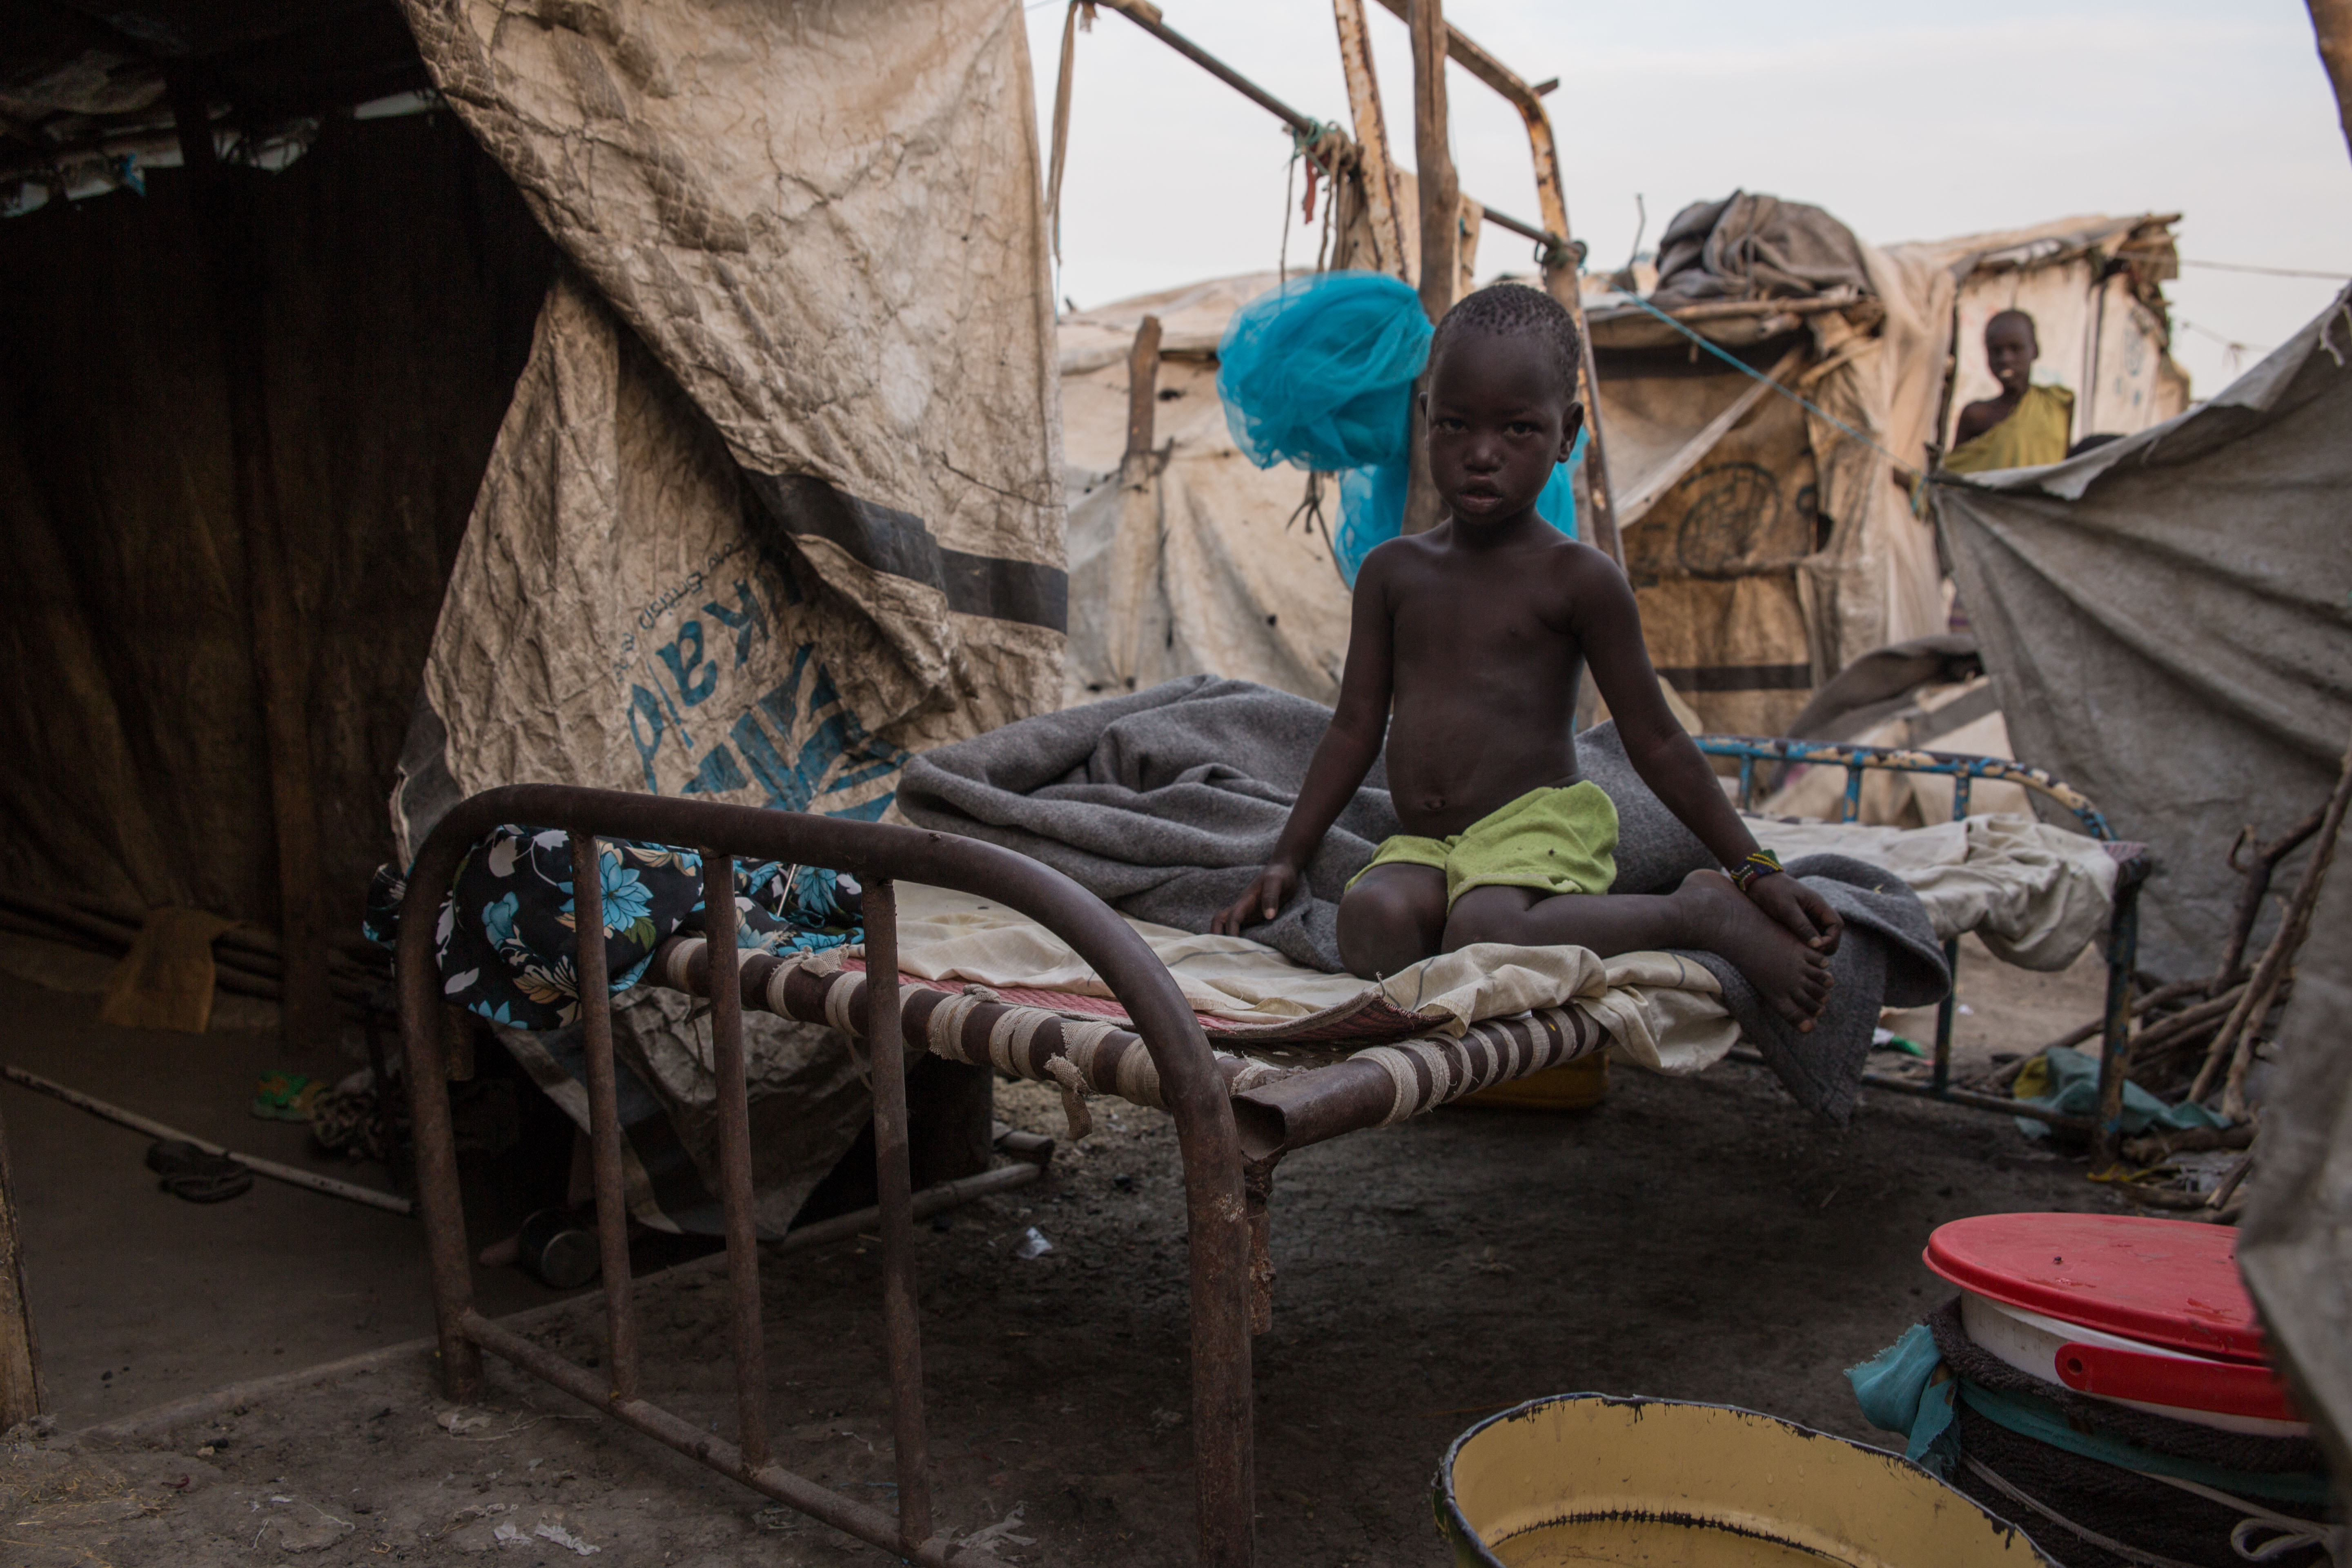 A photo taken on March 13, 2018, shows a child siting on a bed at an internally displaced person camp, hosting more than 24,000 people, in Malakal, South Sudan.